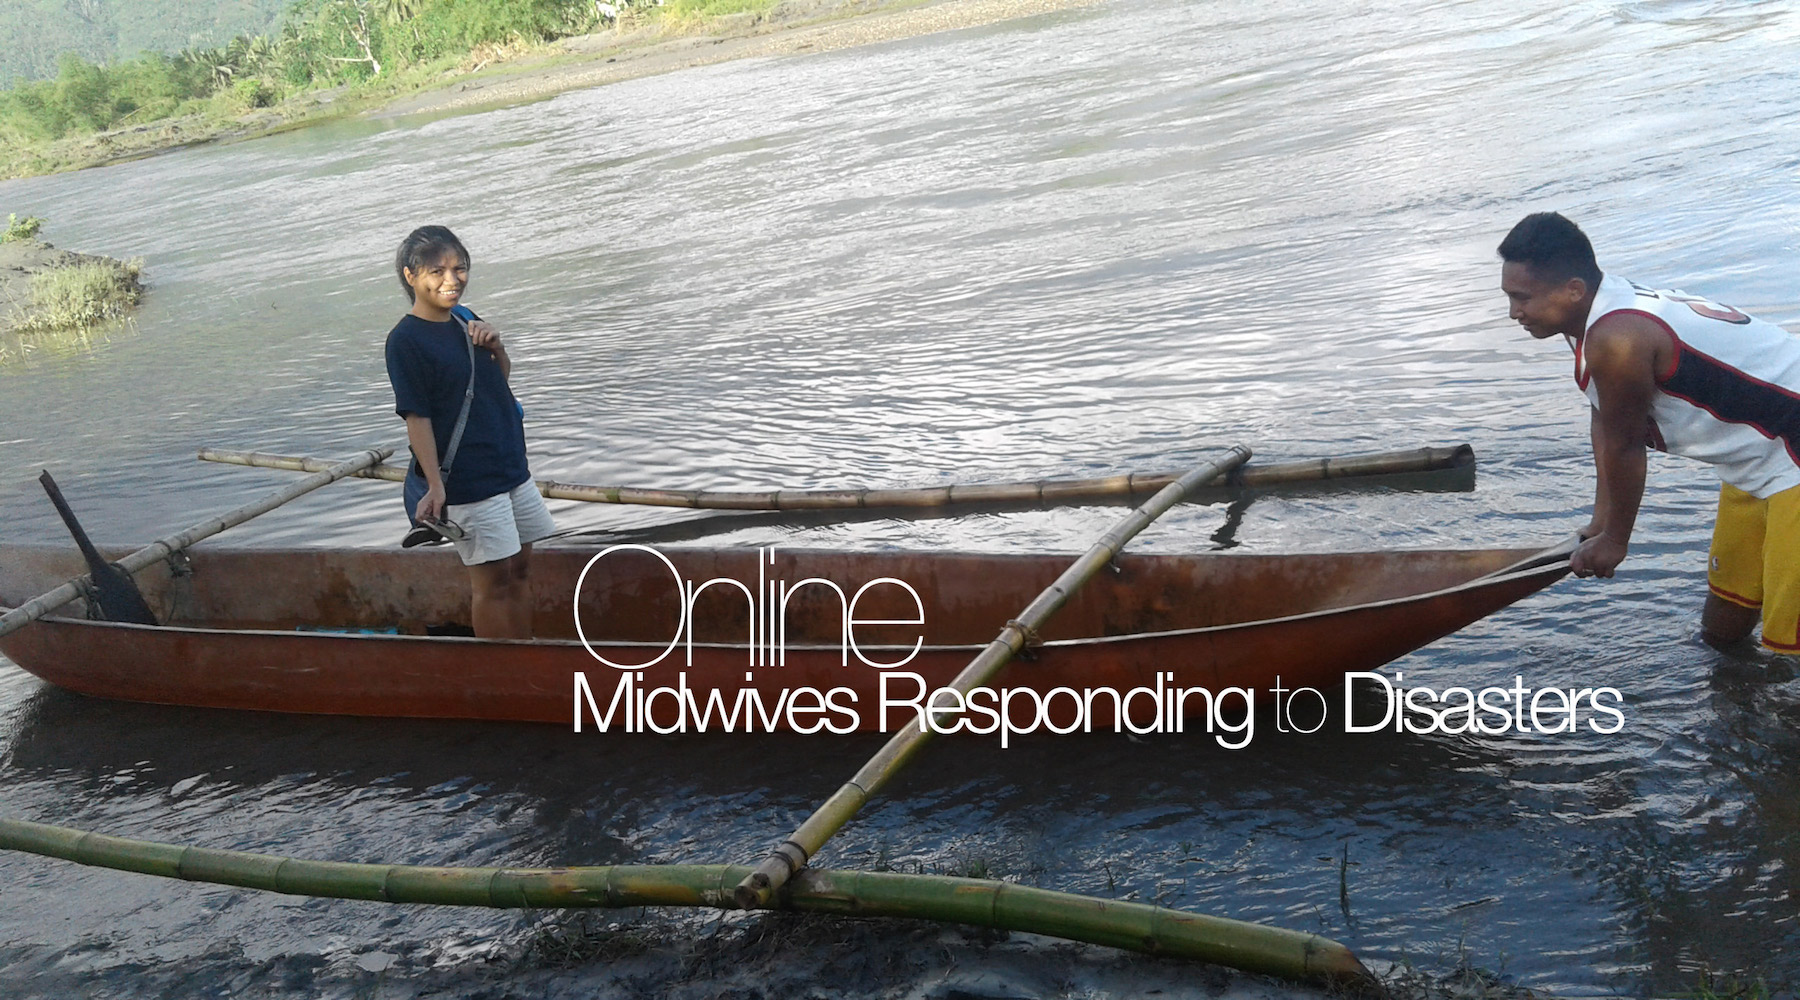 Online-Midwives responding to disasters small.jpg